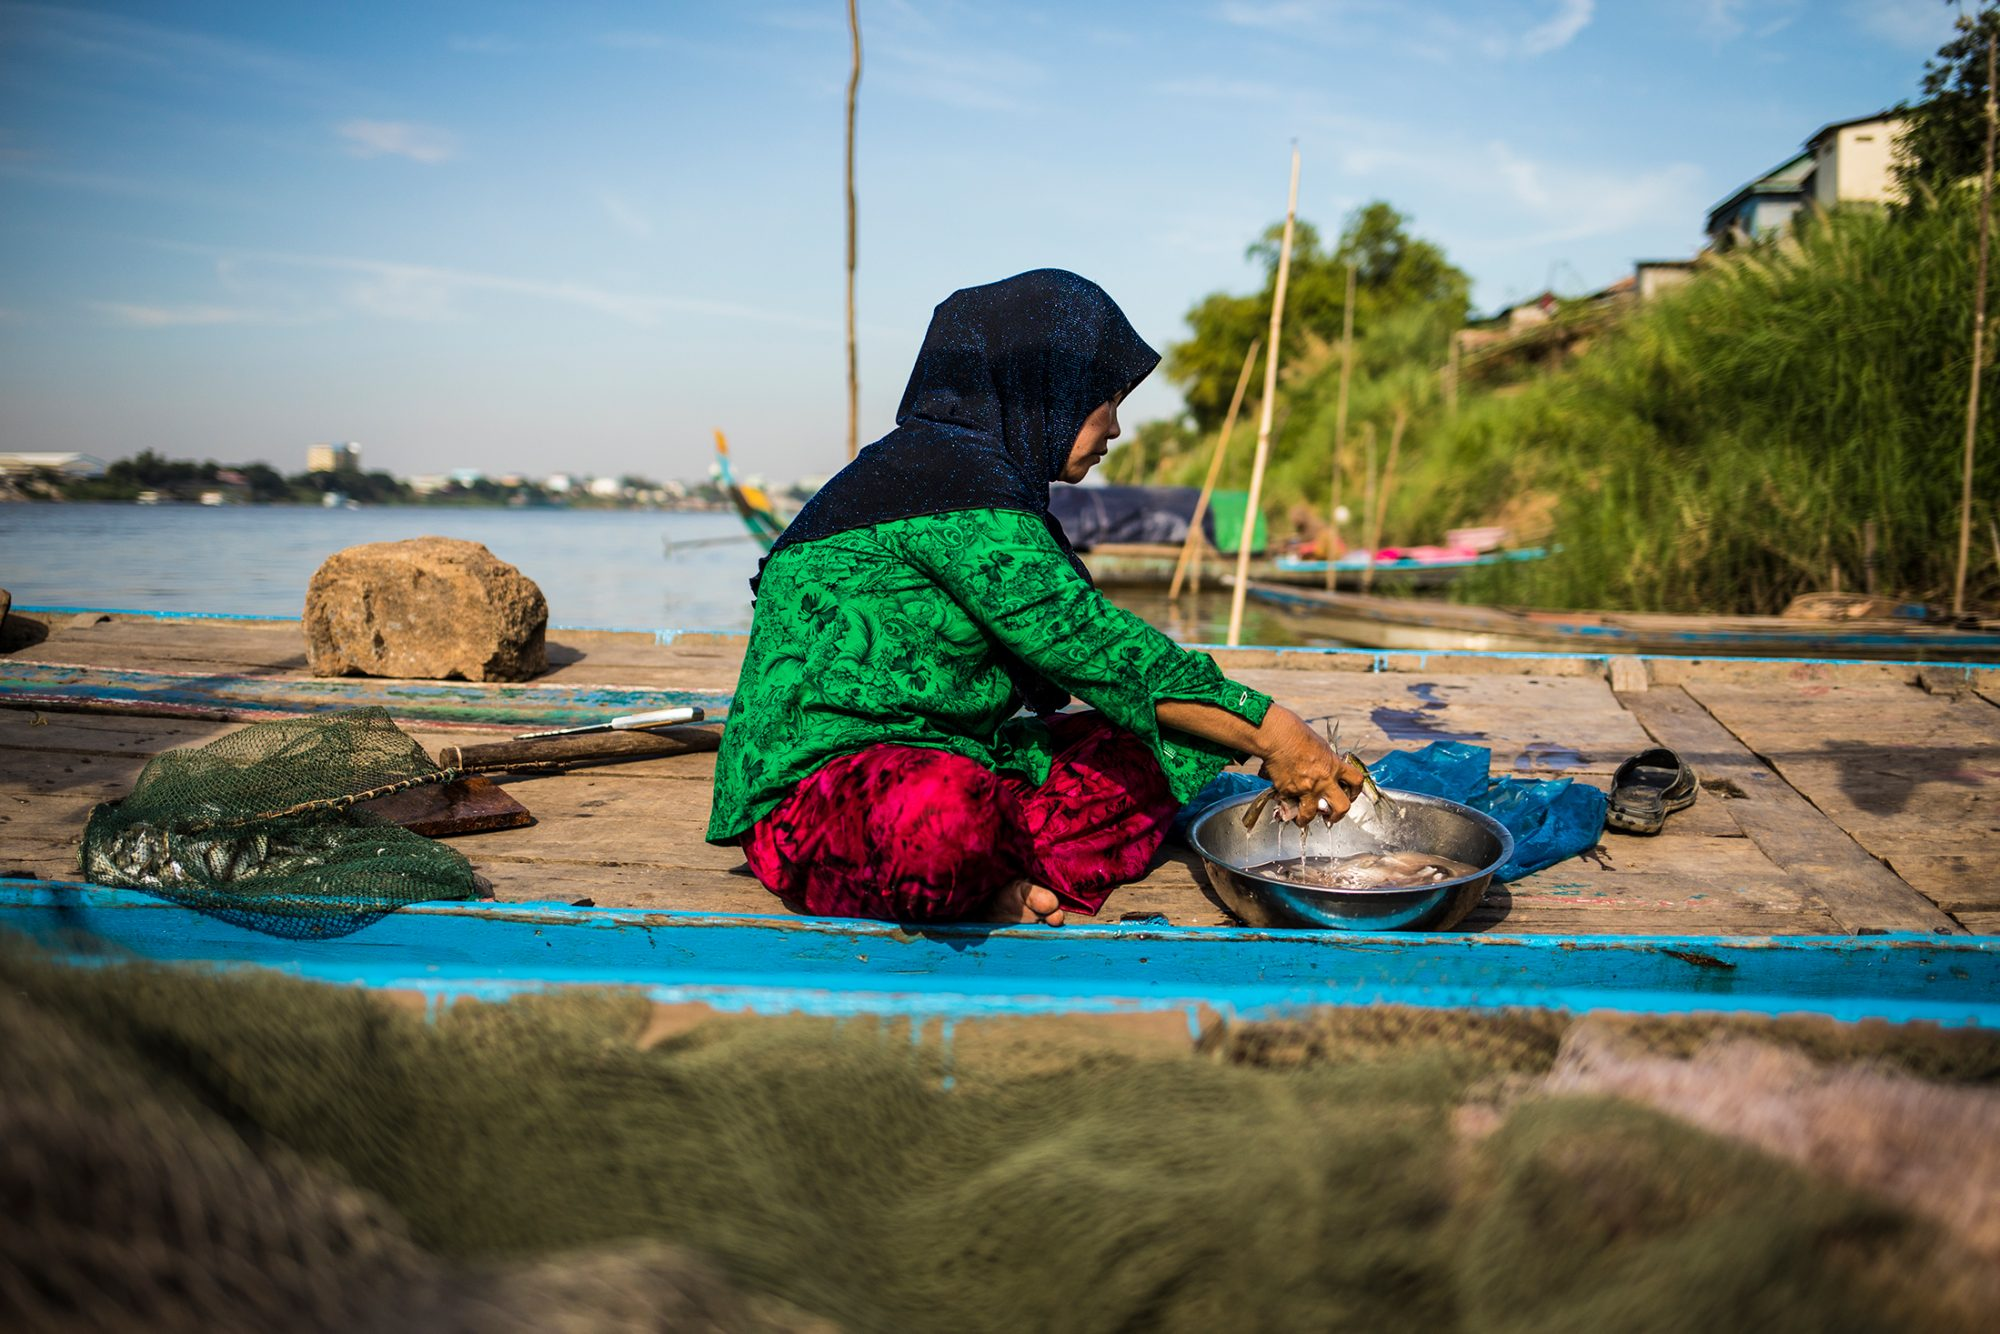 A woman in a hijab sits in a fishing boat near the shore and washes small fish in a metal bowl